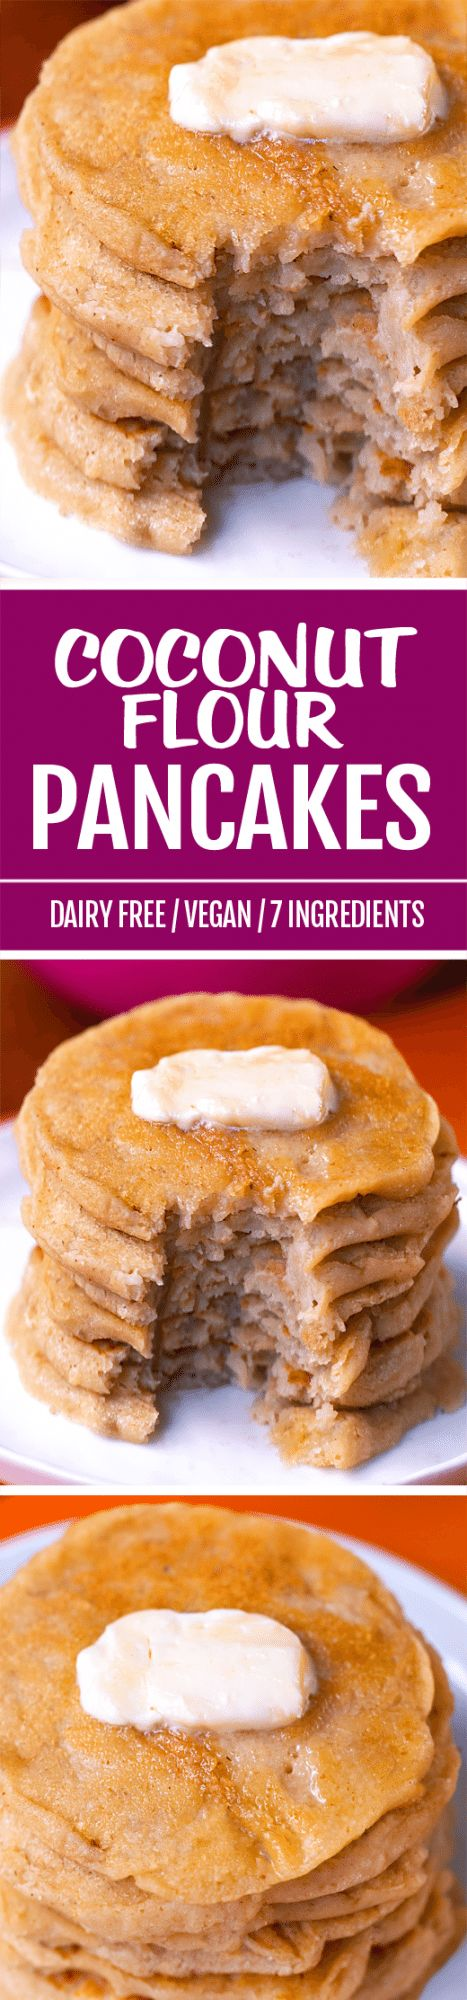 Soft, fluffy coconut flour pancakes made from scratch - with no eggs or gluten!